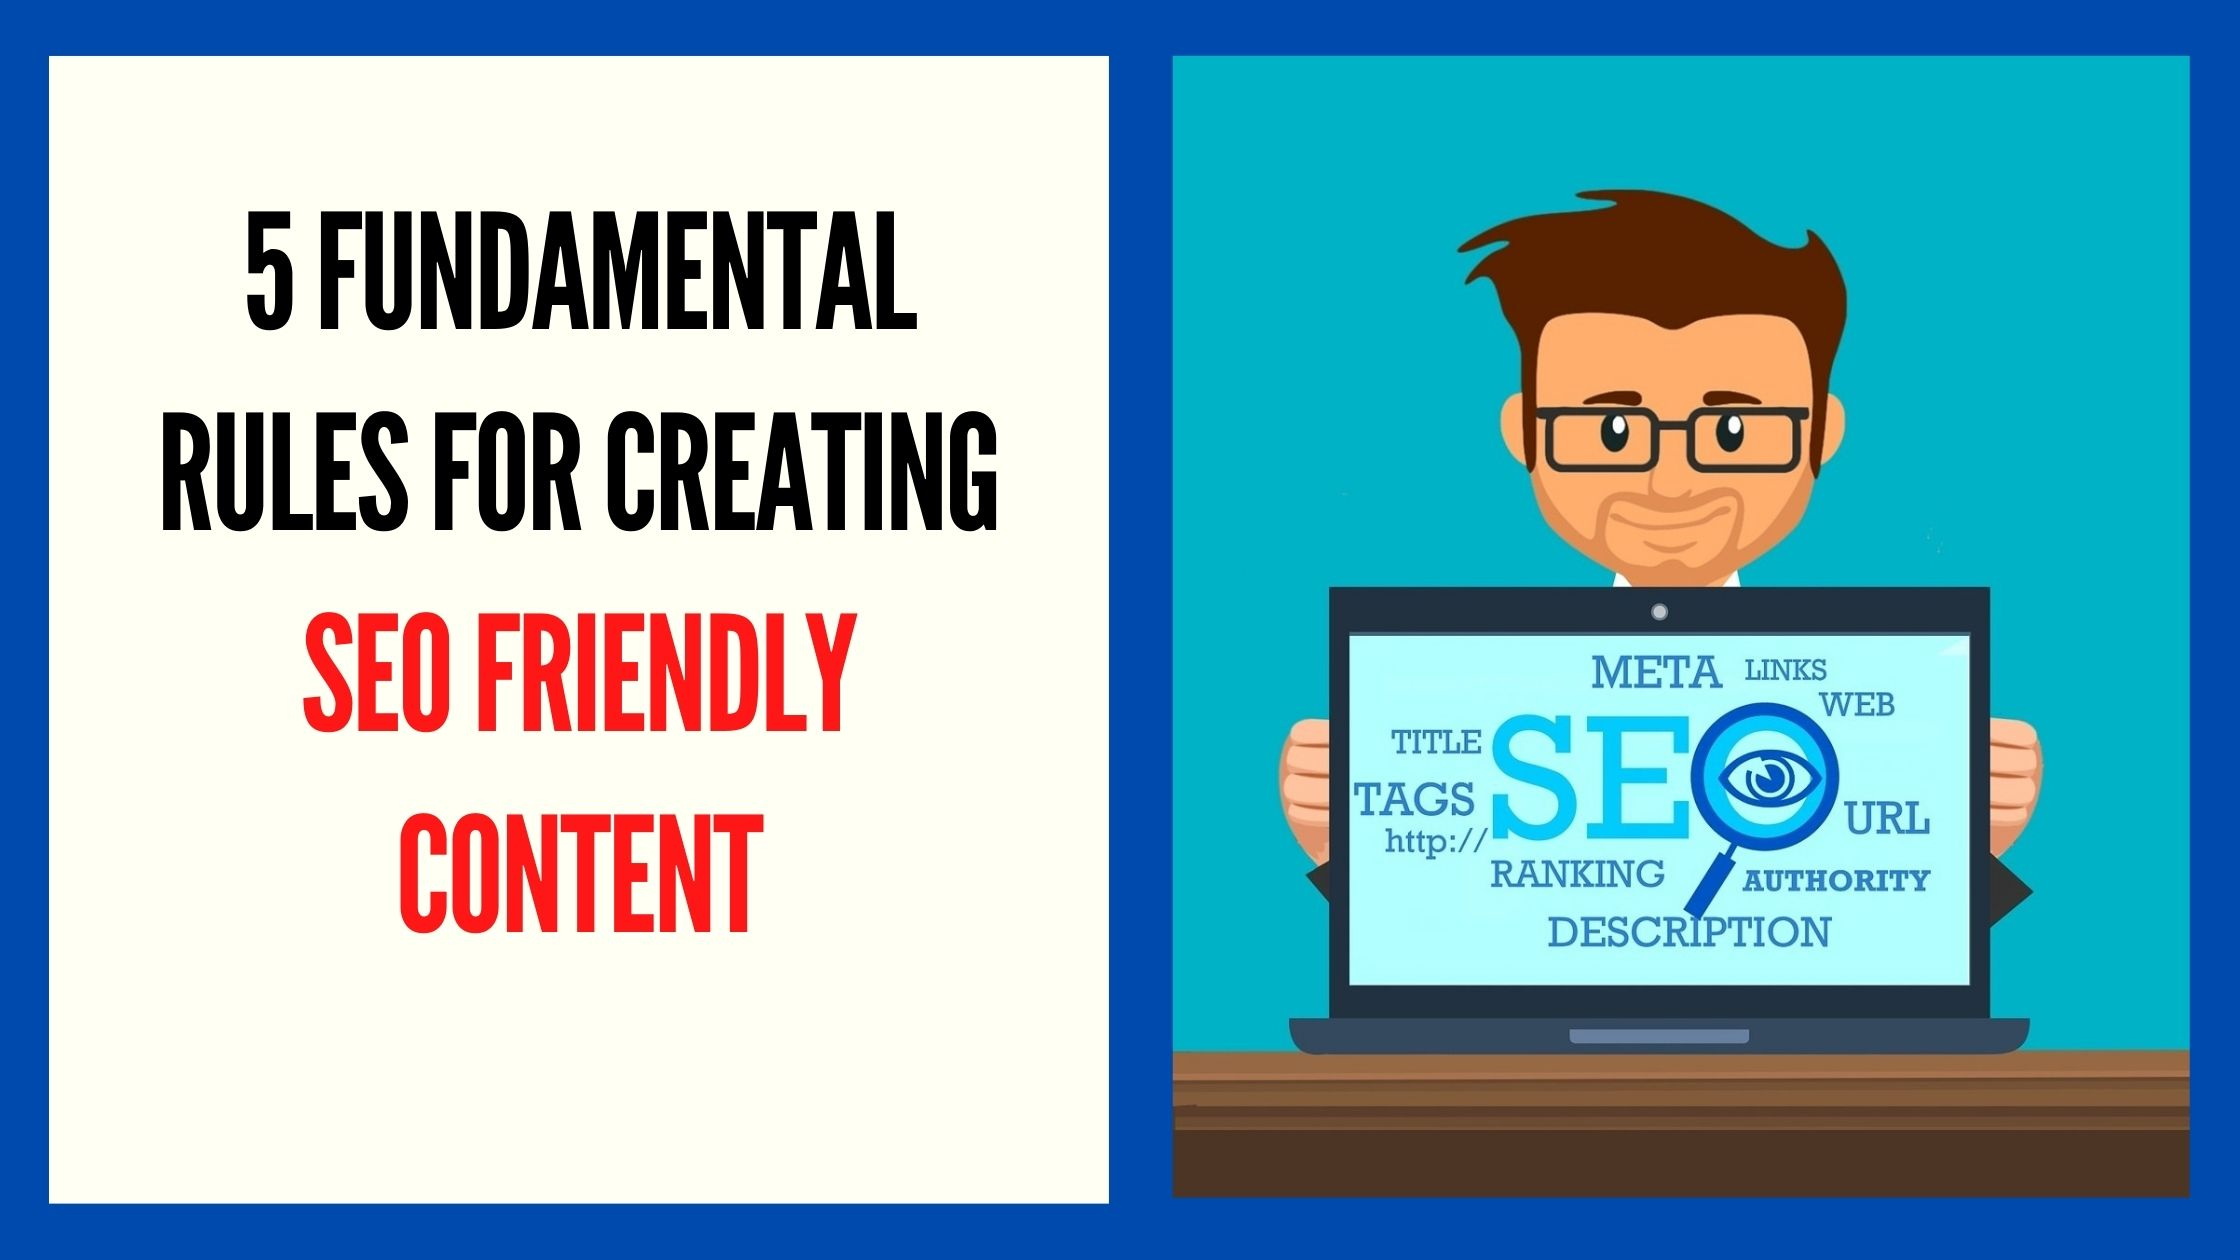 Fundamental Rules for SEO Friendly Content